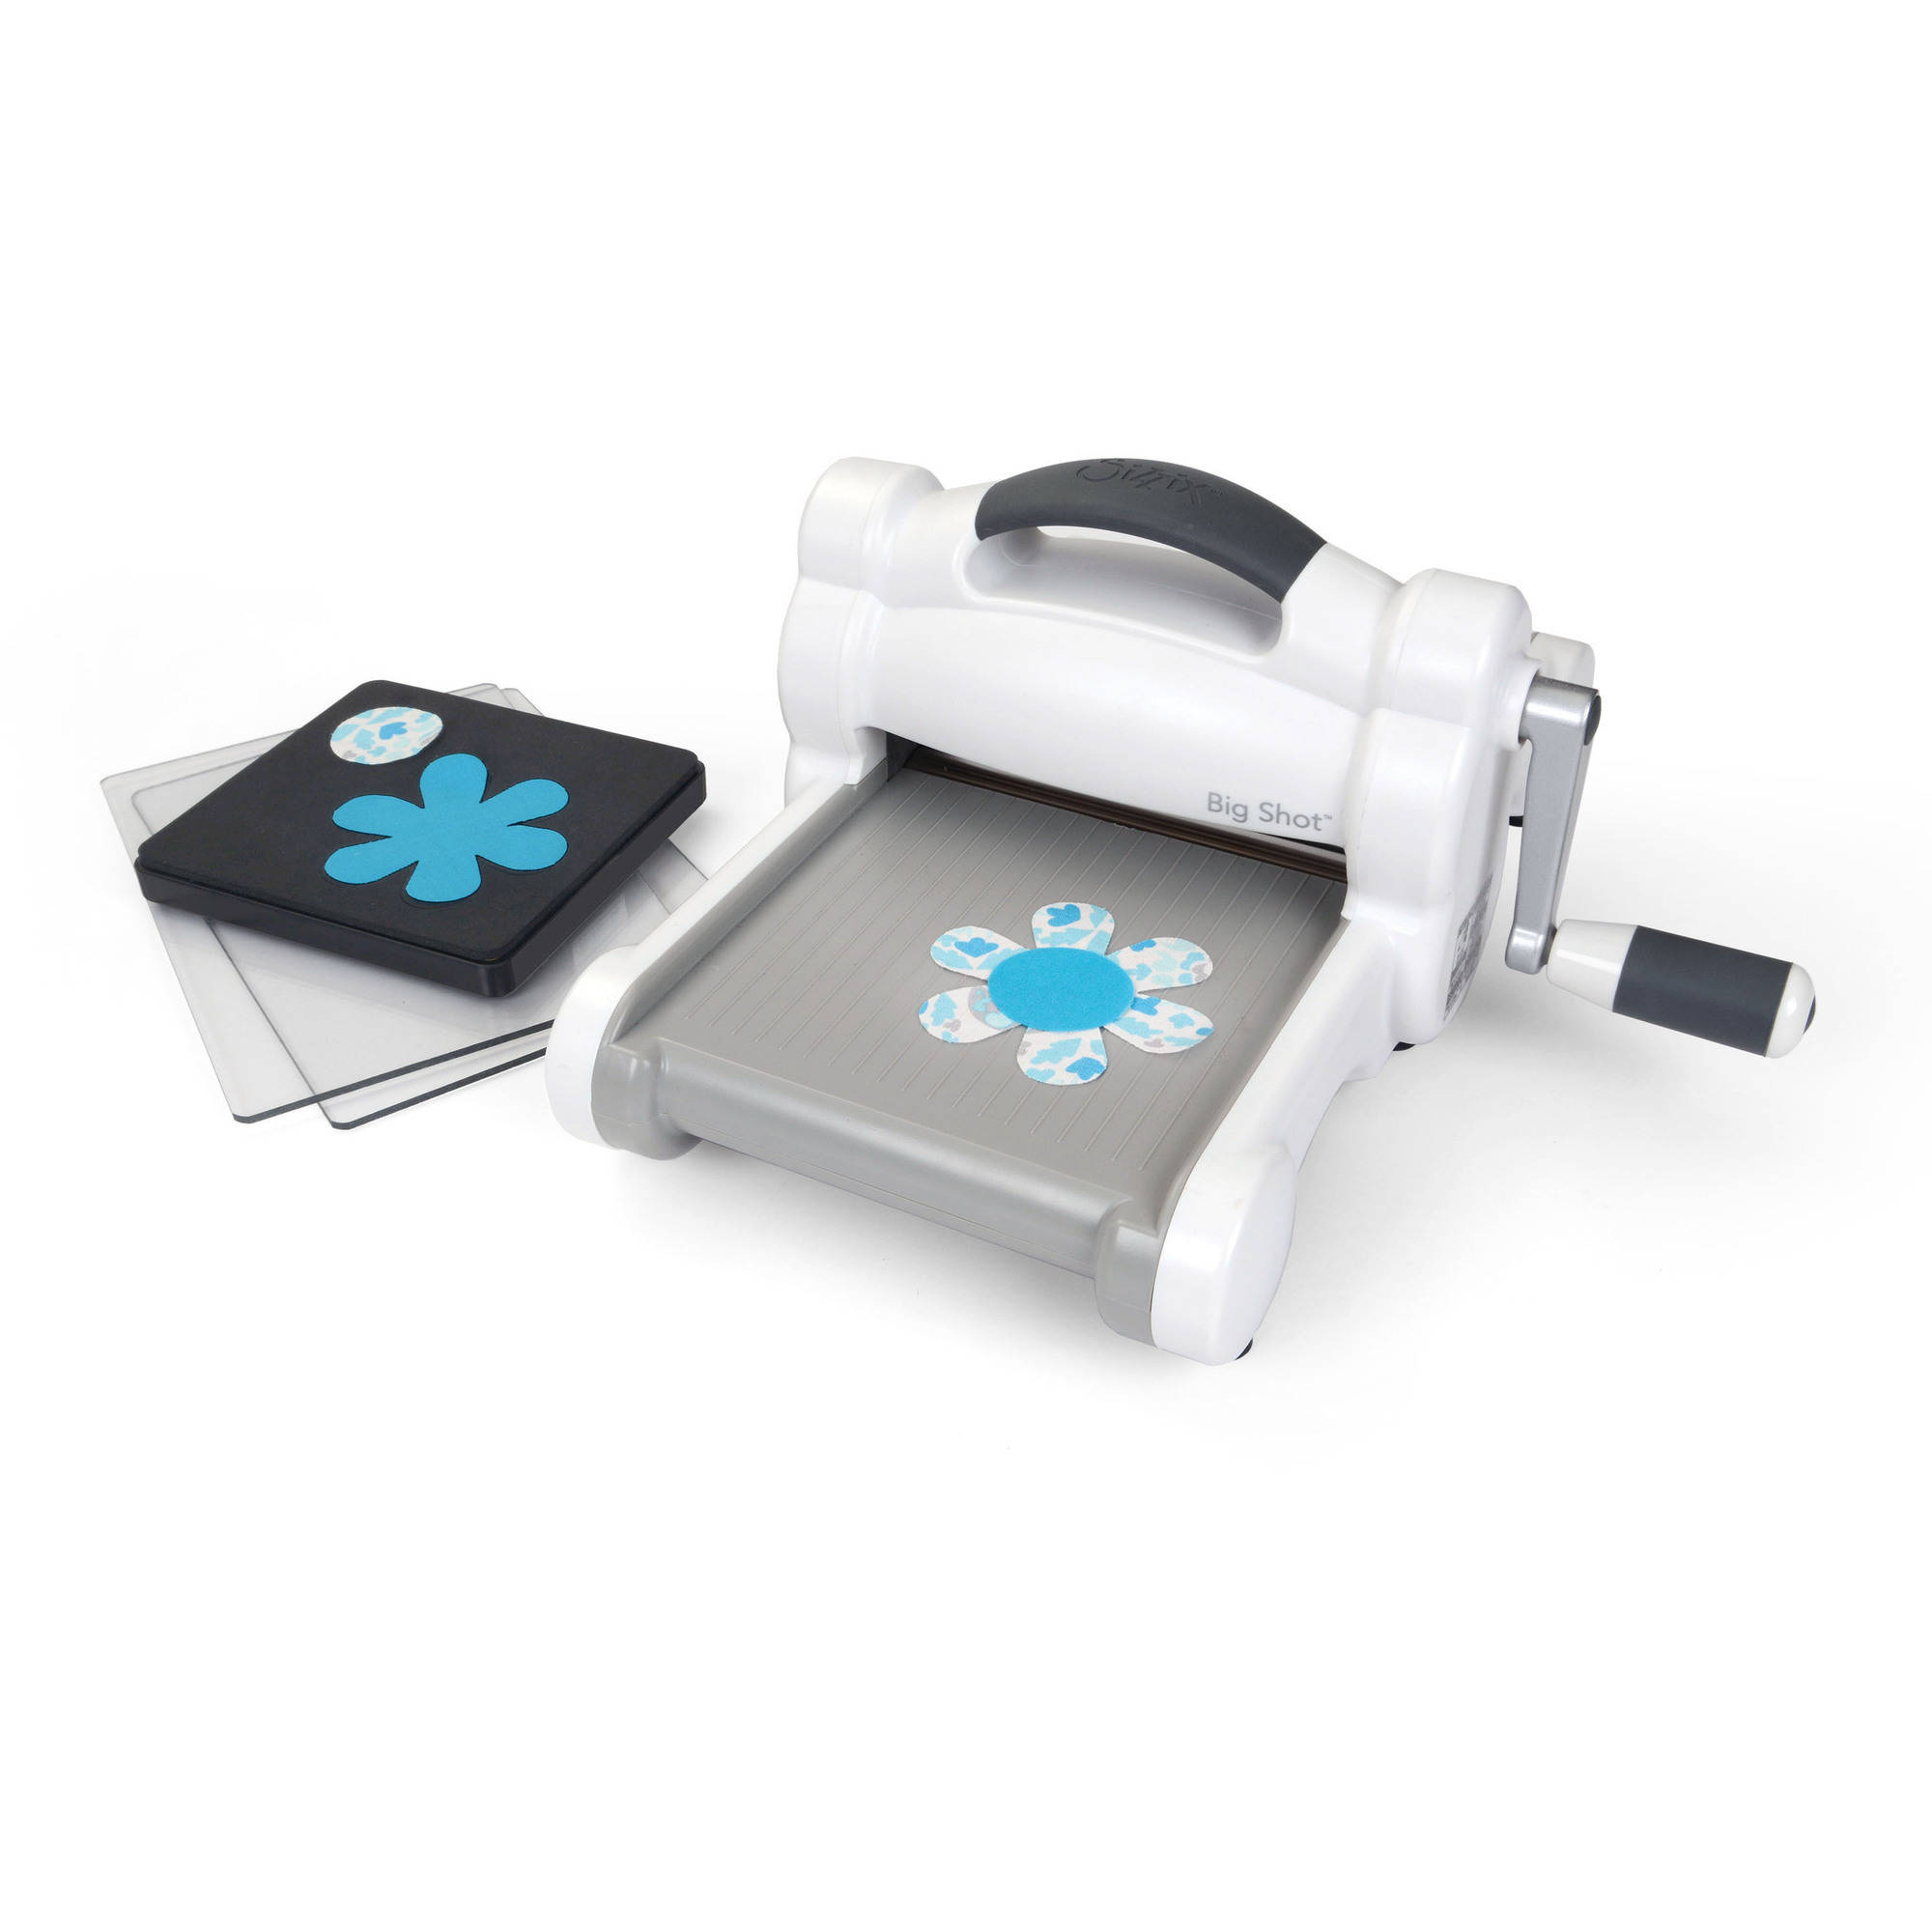 Sizzix Big Shot Machine Kit